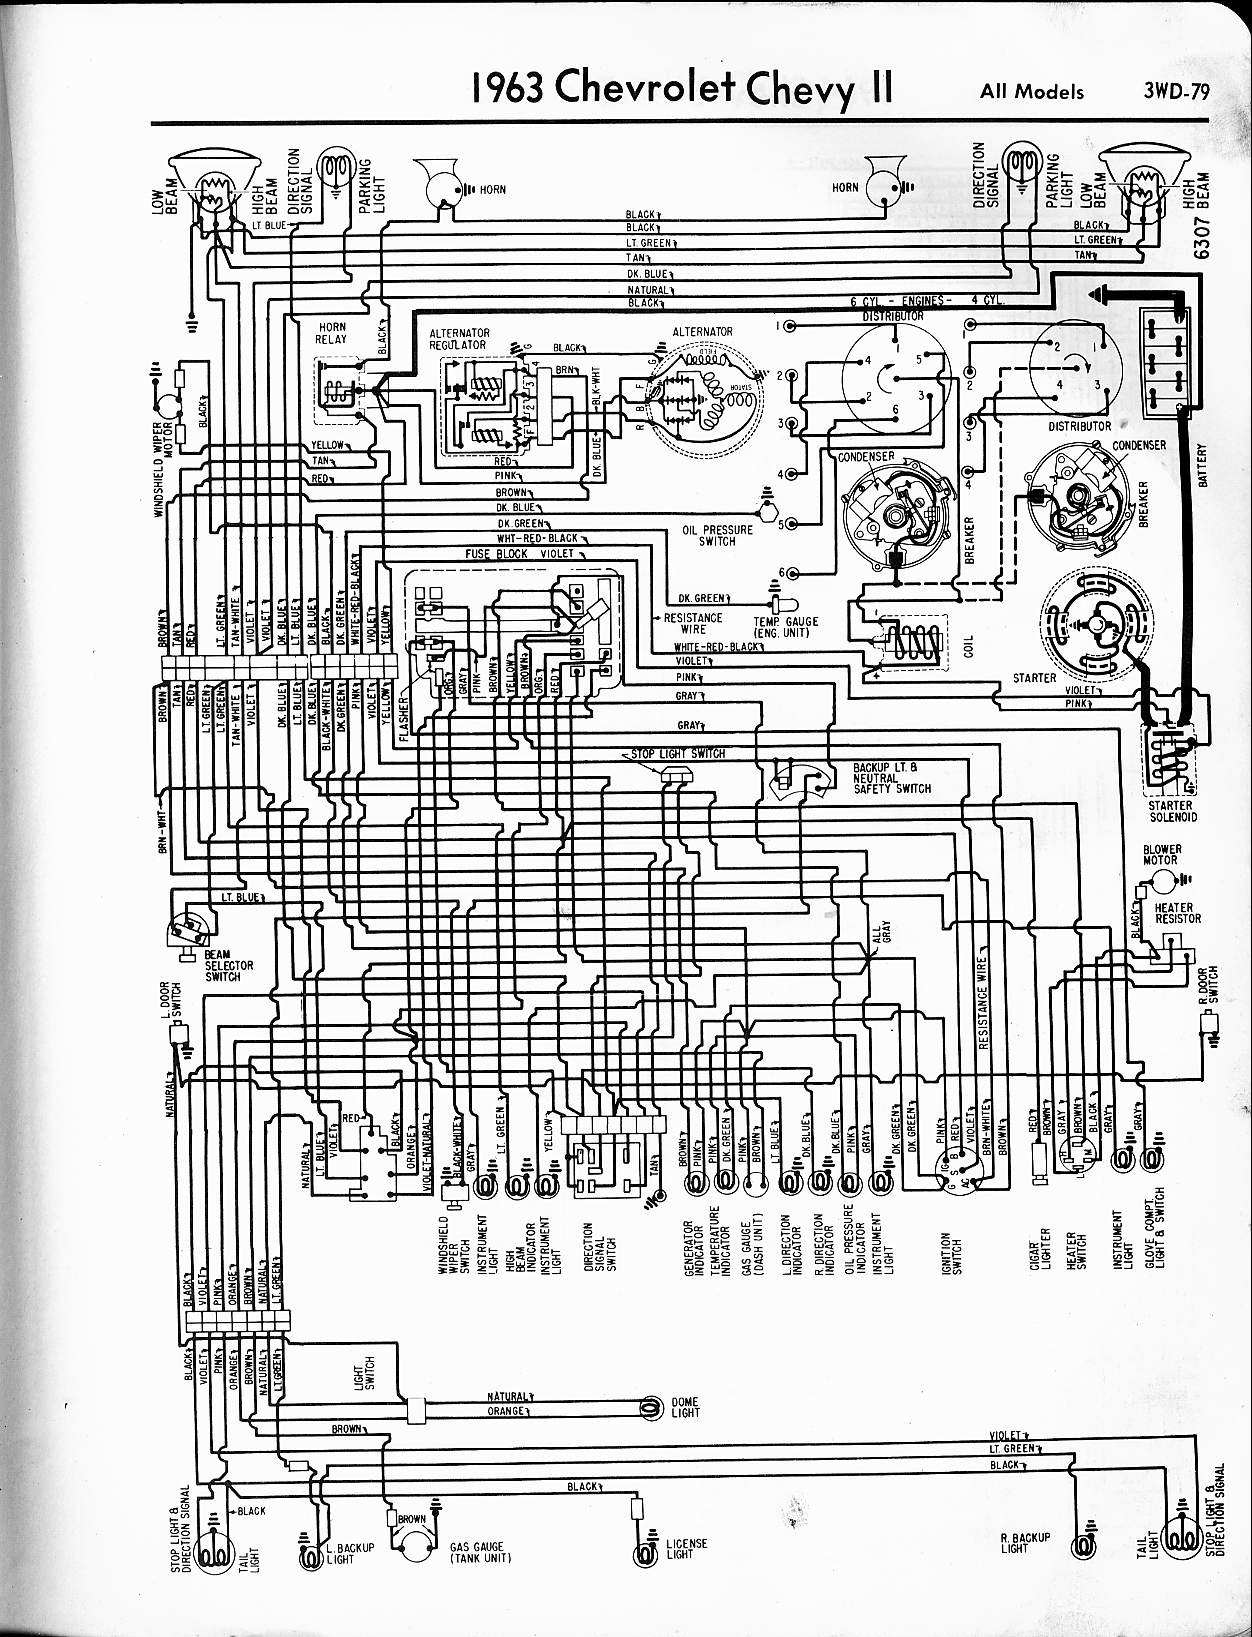 1963 chevy pickup wiring diagram under hood 1963 chevy pickup 2012 Chevy Truck Wiring Diagram 57  sc 1 st  MiFinder : 1963 chevy truck wiring diagram - yogabreezes.com